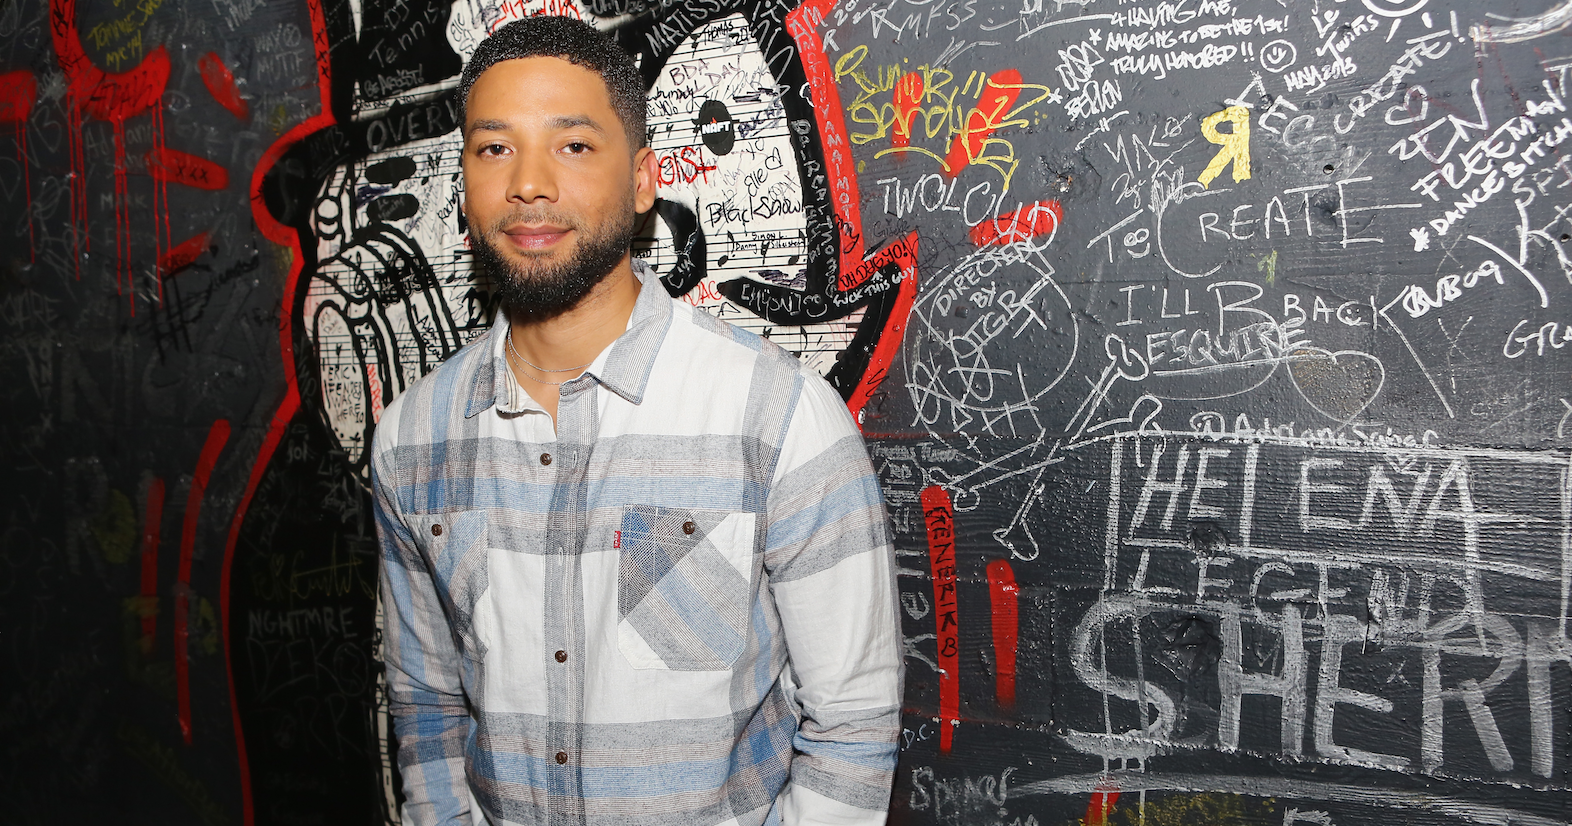 Jussie Smollett to Be Removed From Last 2 Episodes of 'Empire' Following False Police Report Arrest